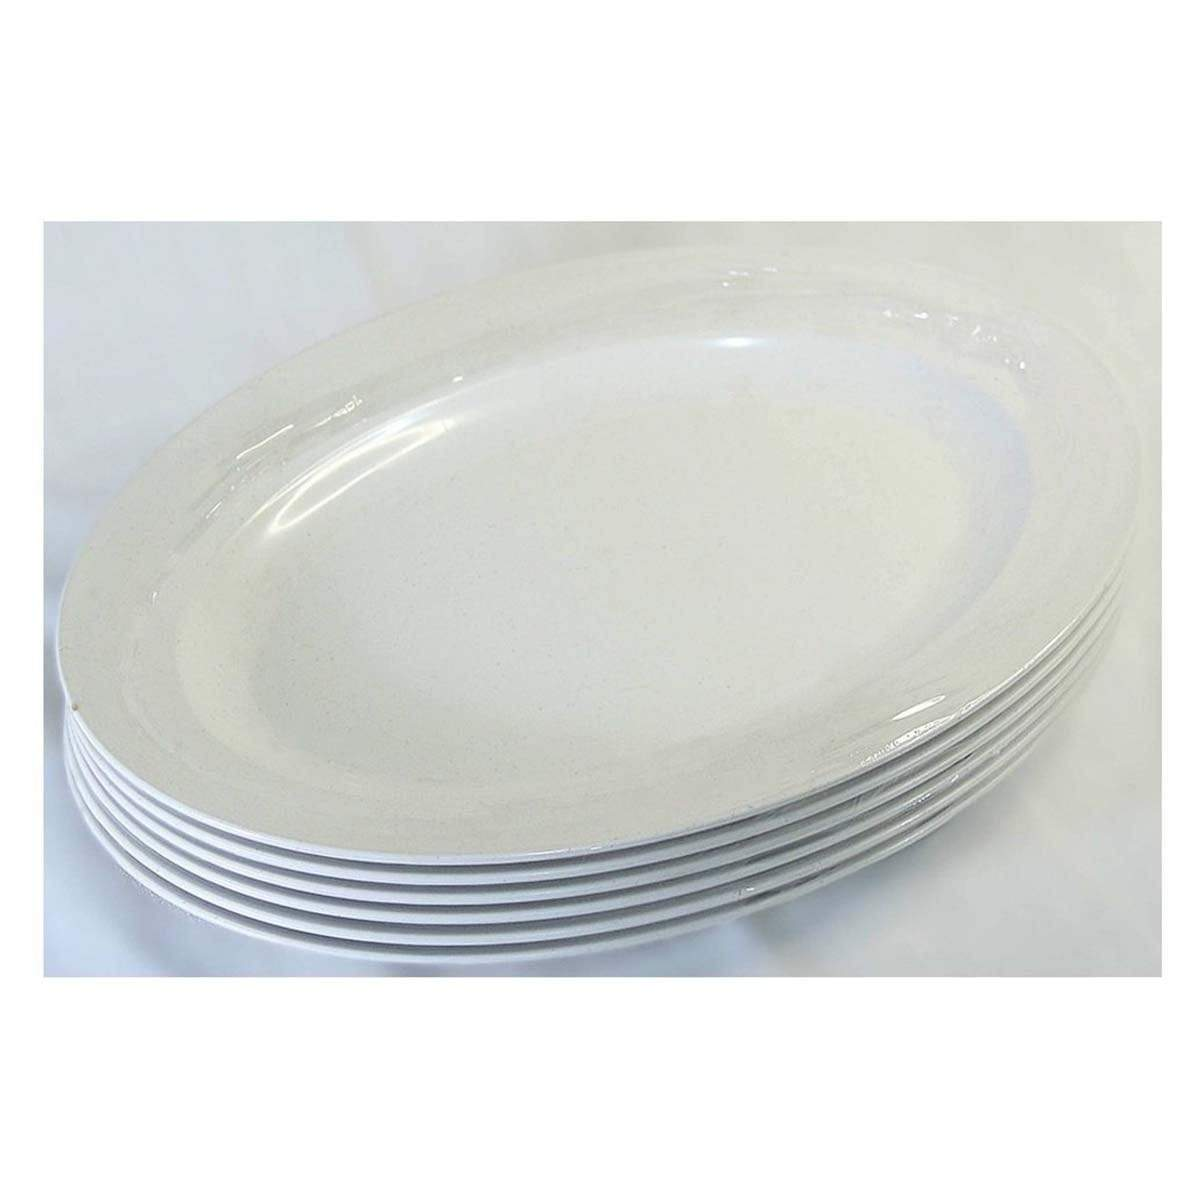 PLT1412 LAVA AS Oval Plate (6pcs) 12 inches